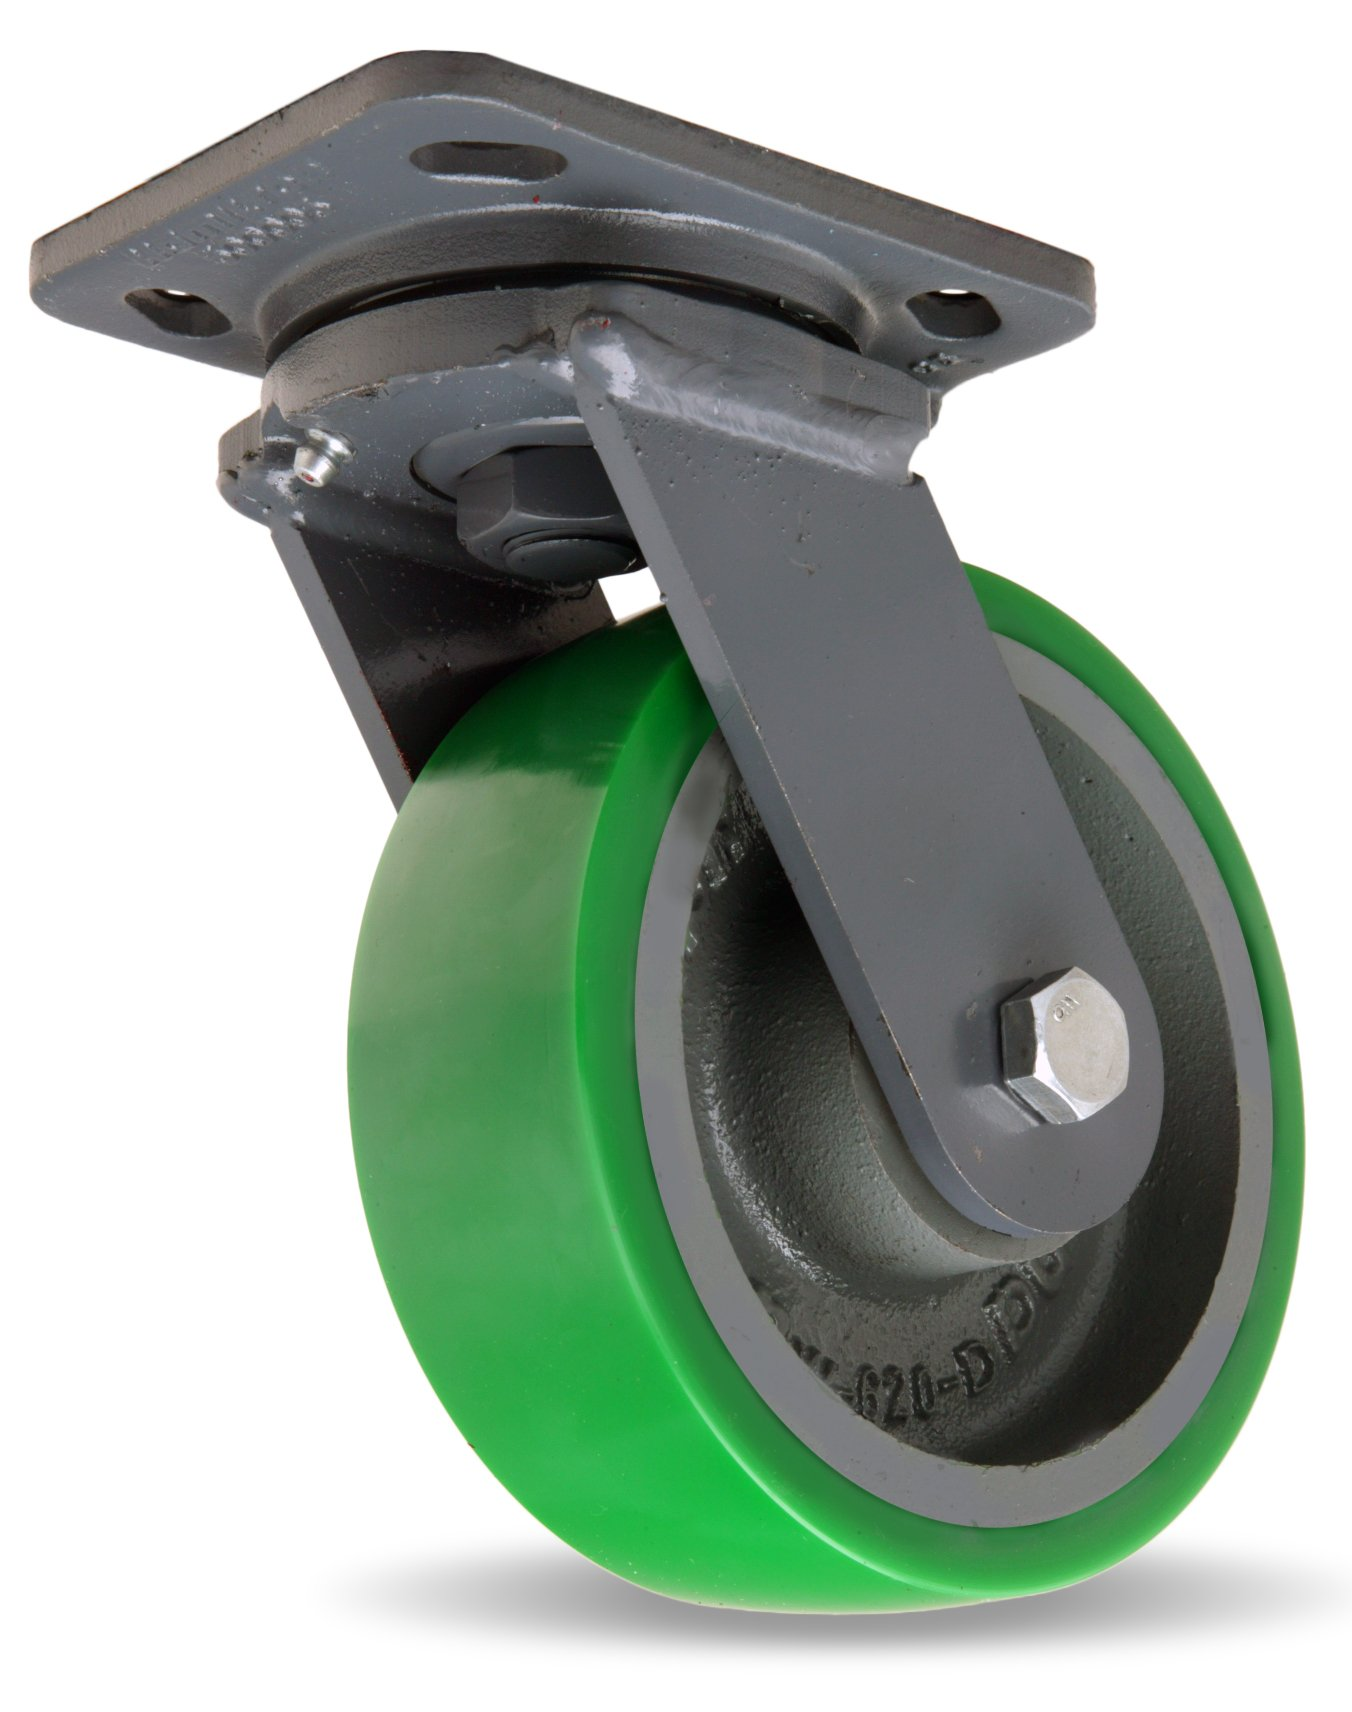 Hamilton Workhorse Plate Caster, Swivel, Duralast Polyurethane Wheel, Precision Ball Bearing, 1200 lbs Capacity, 6'' Wheel Dia, 2'' Wheel Width, 7-1/2'' Mount Height, 5'' Plate Length, 4'' Plate Width